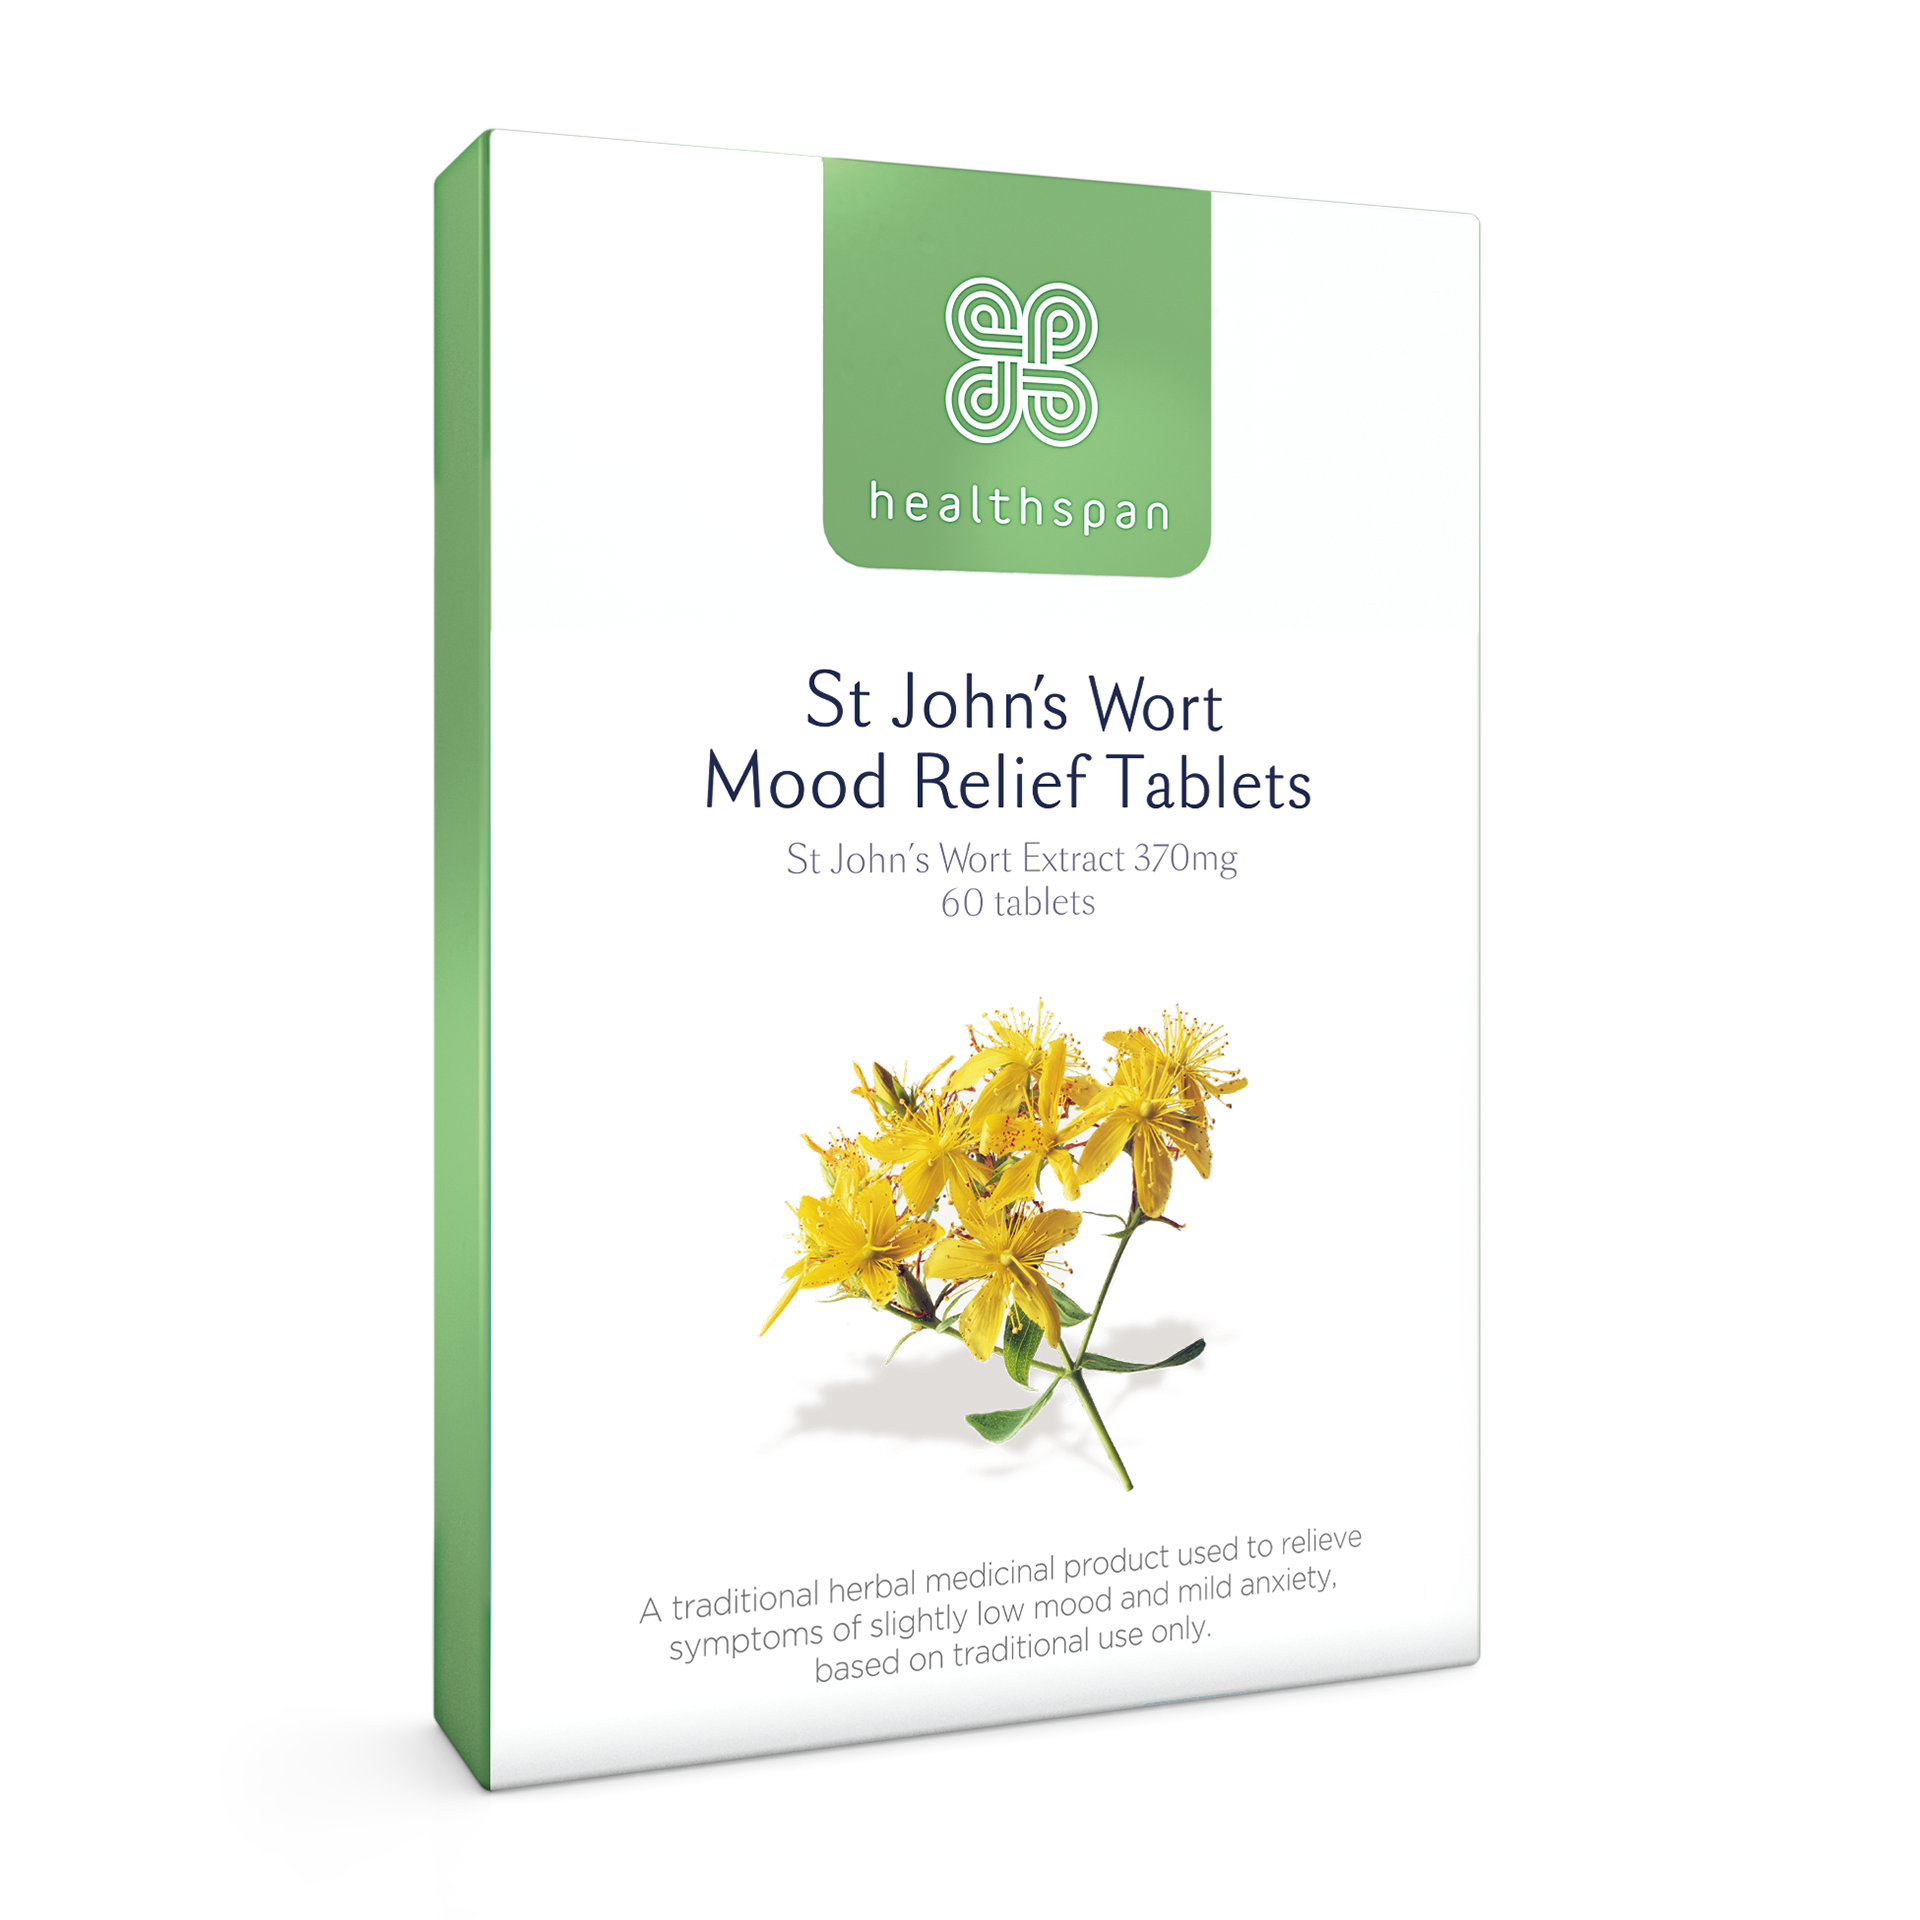 St John's Wort Mood Relief THR tablets